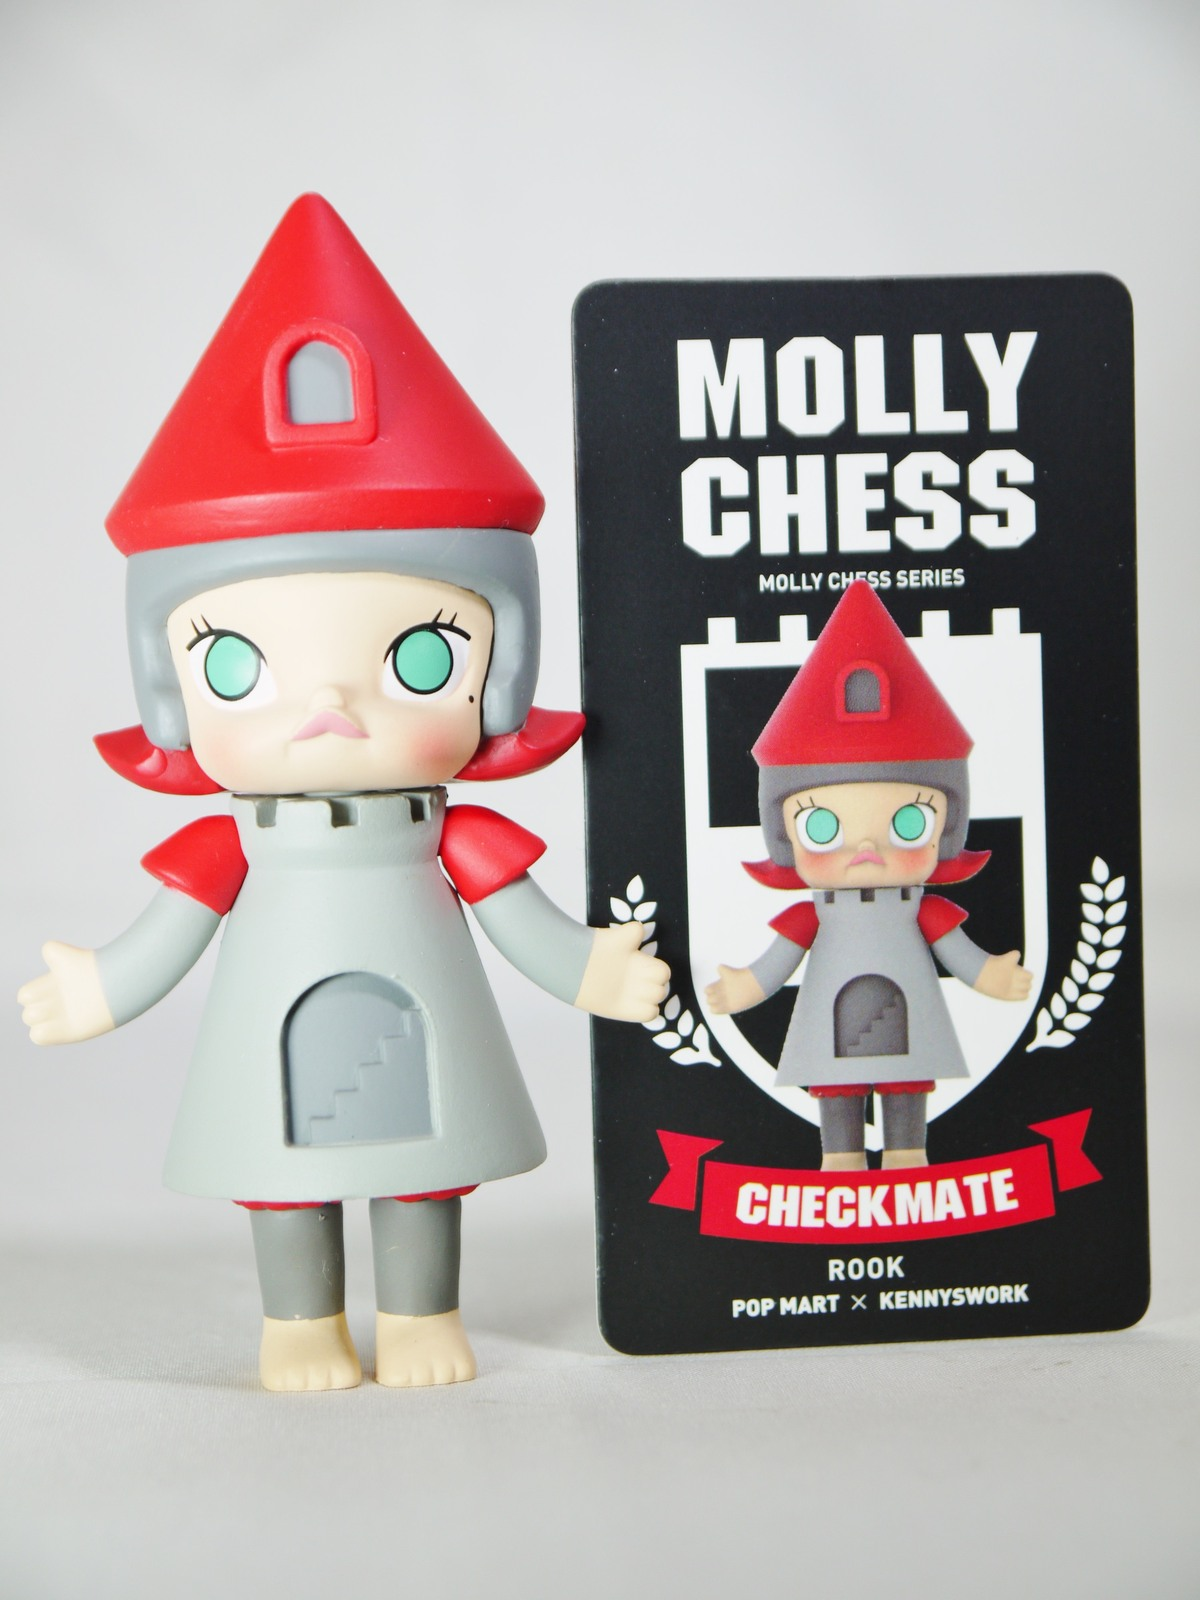 POP MART Kennyswork BLOCK Little Molly Chess Club Chessmate ROOK Grey & Red